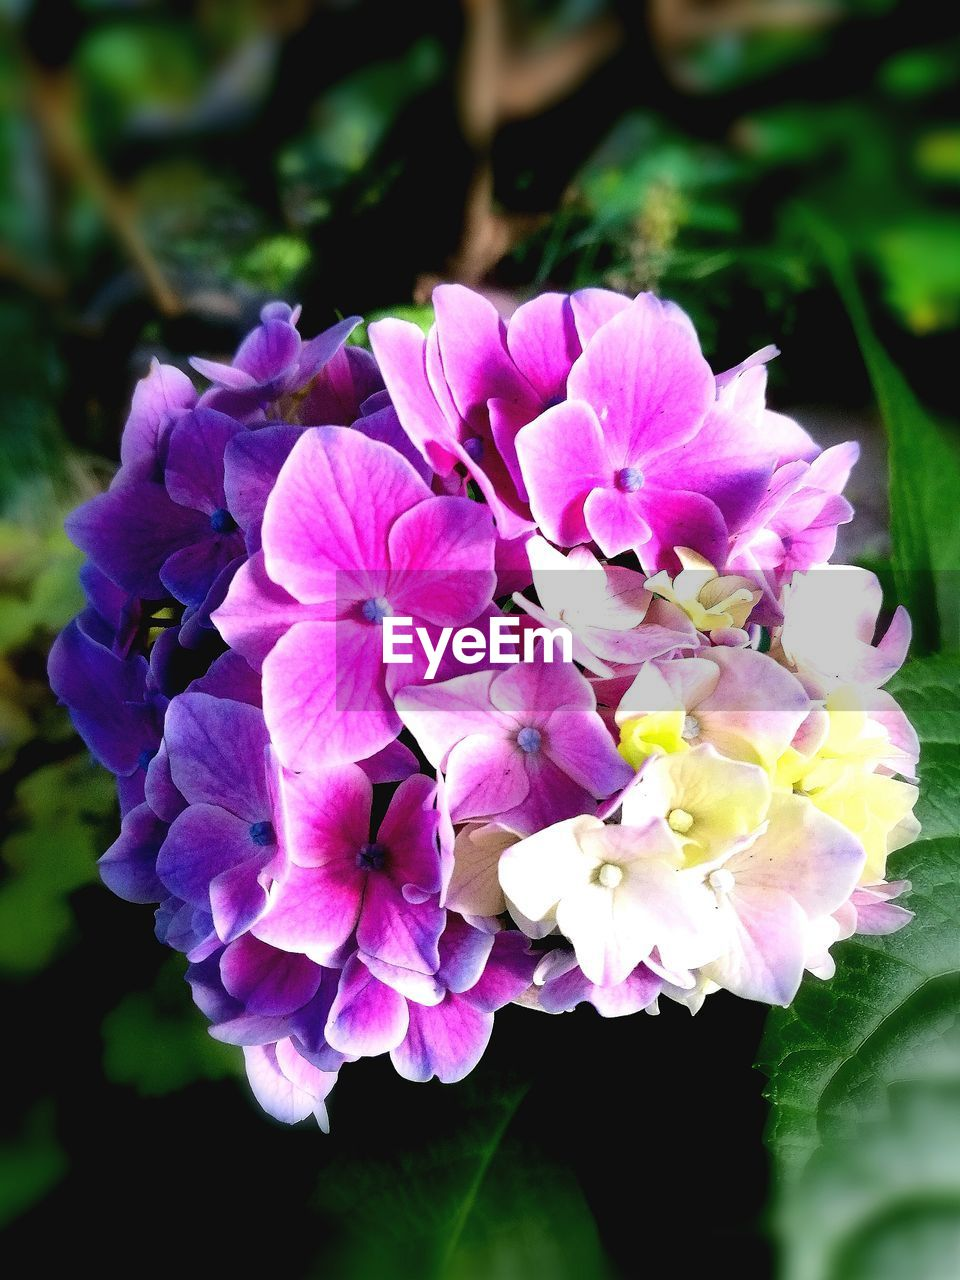 flower, beauty in nature, petal, nature, growth, plant, fragility, purple, pink color, no people, outdoors, freshness, flower head, blooming, day, close-up